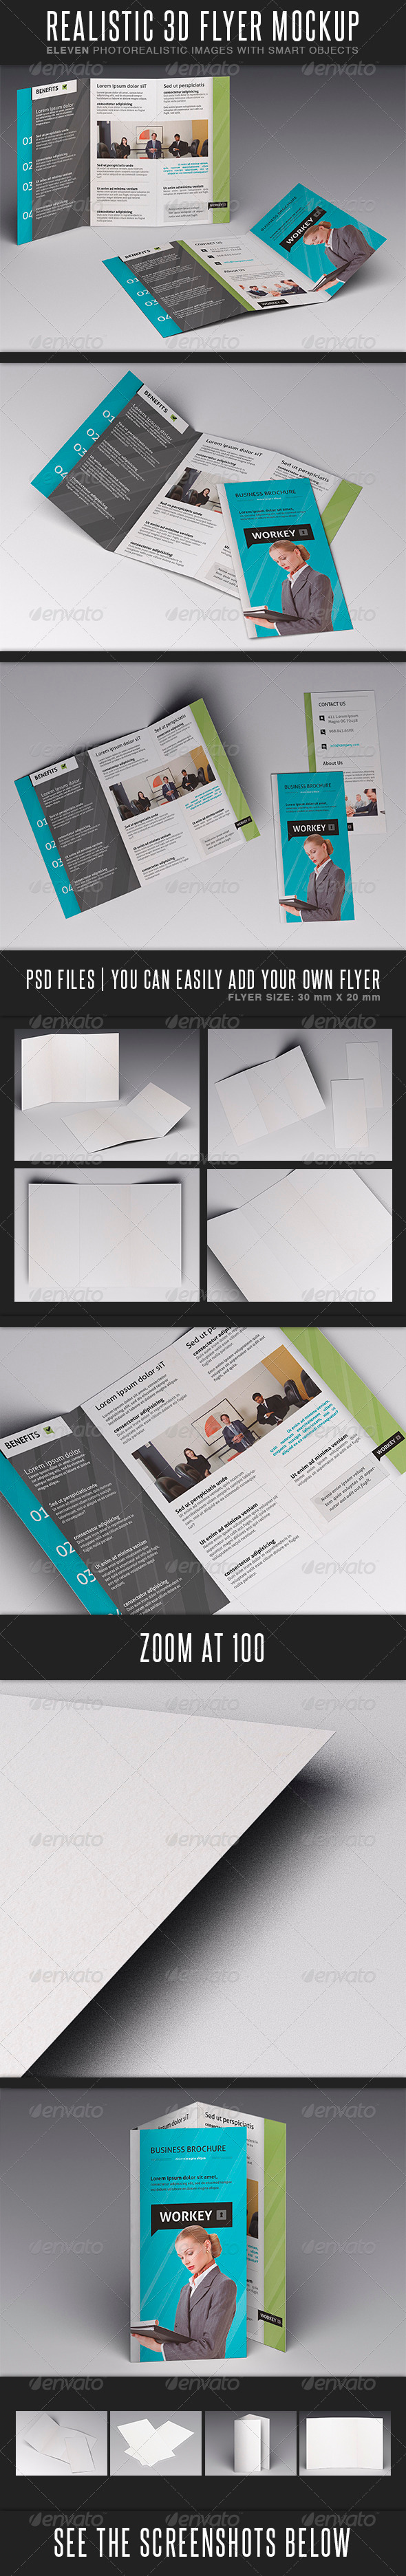 GraphicRiver Realistic Flyer MockUp 3696779